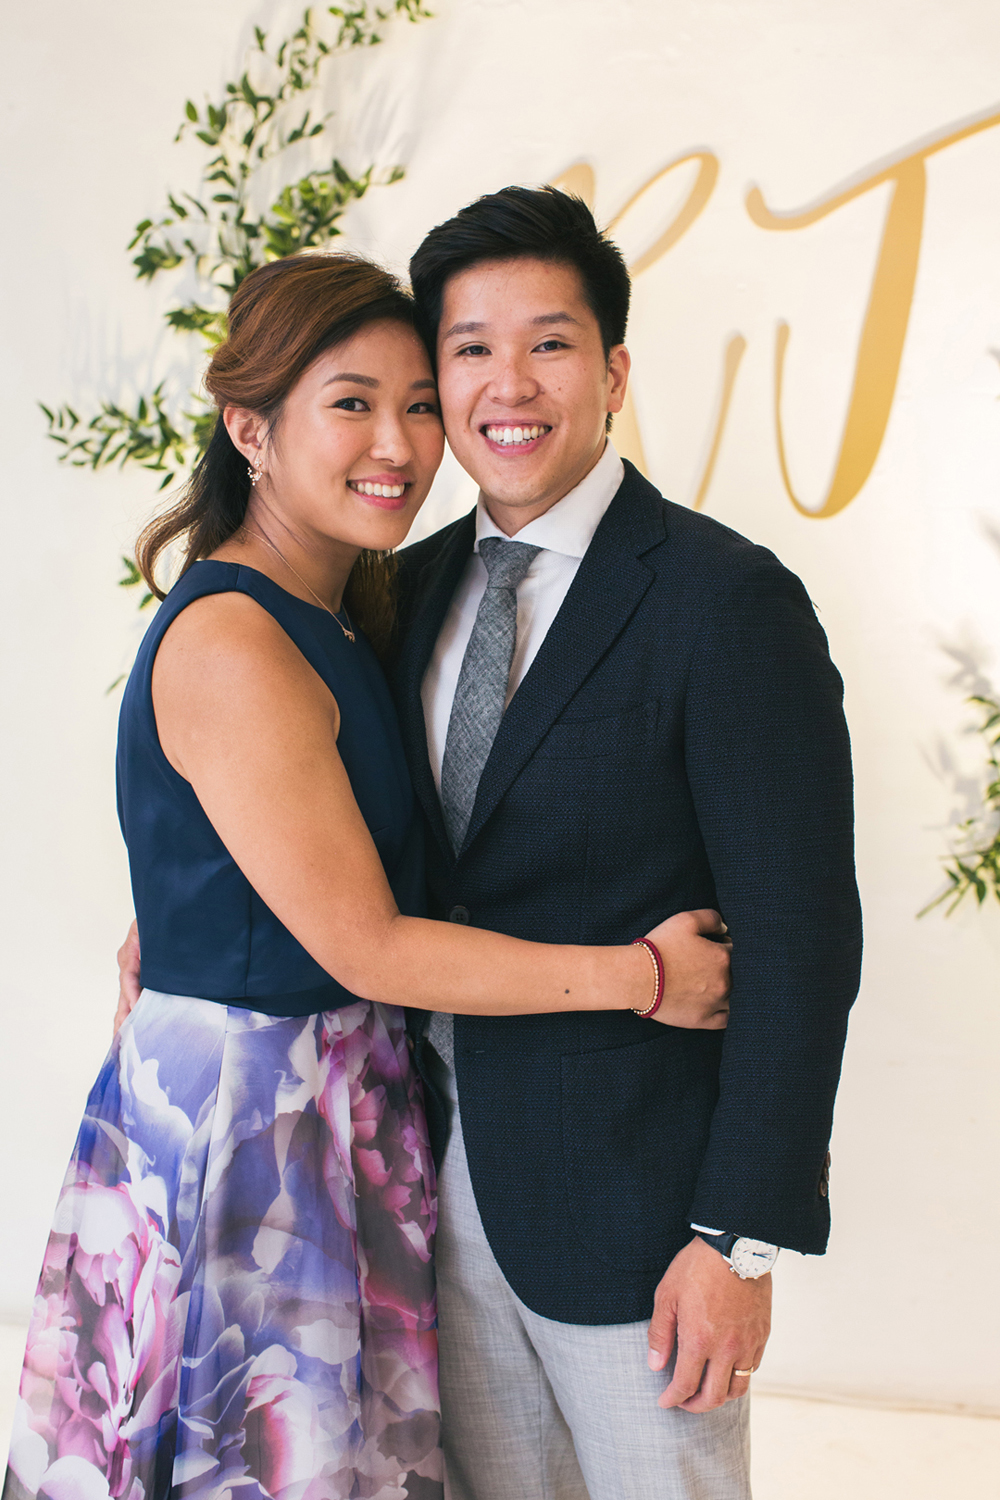 Simple, modern wedding with John and Rachel | planned by Events Artisan